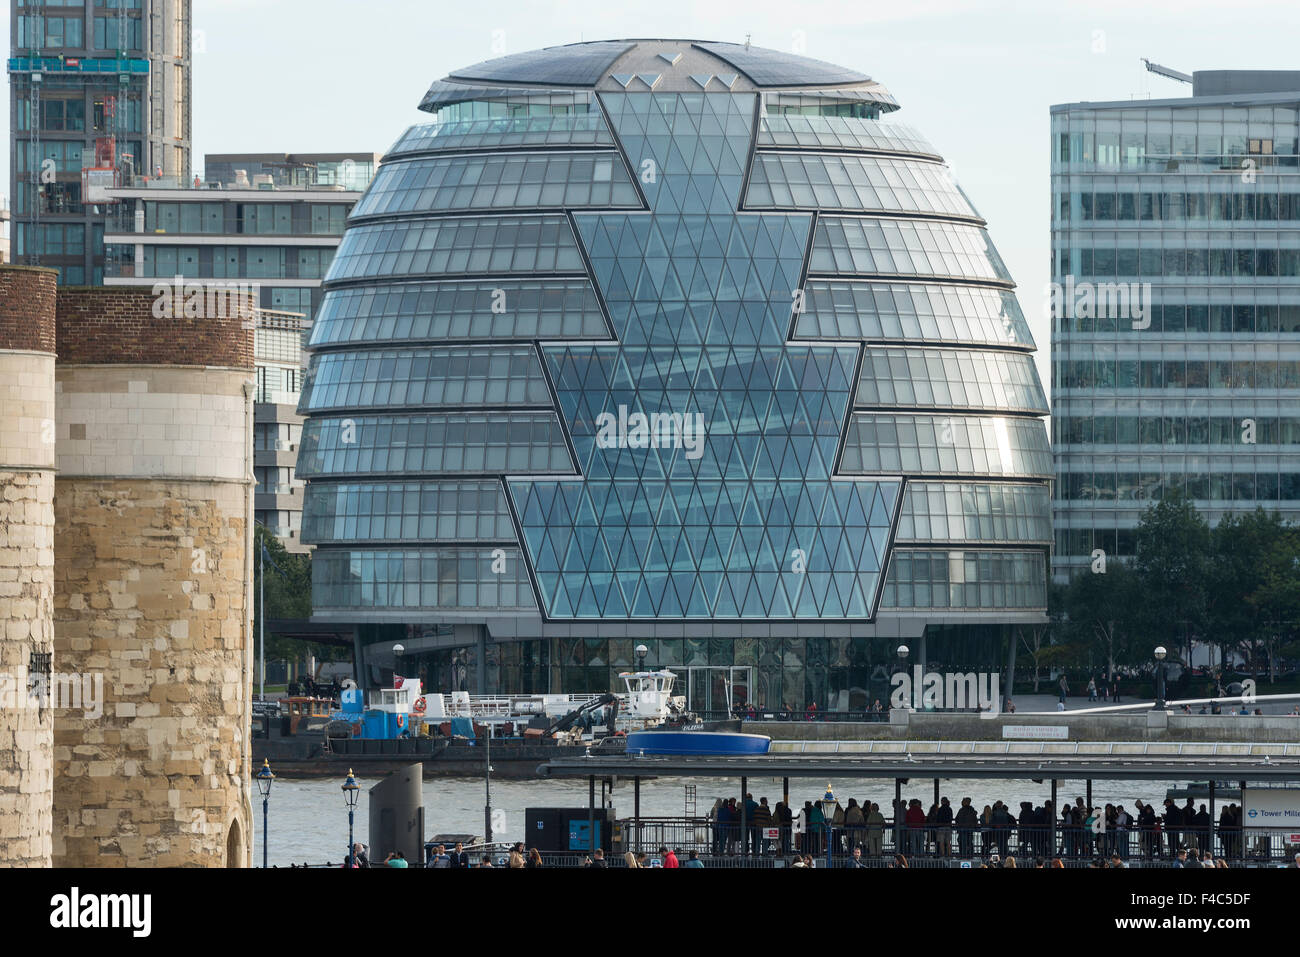 London City Hall (Greater London Authority), The Queen's Walk, Southwark, London, England, United Kingdom - Stock Image